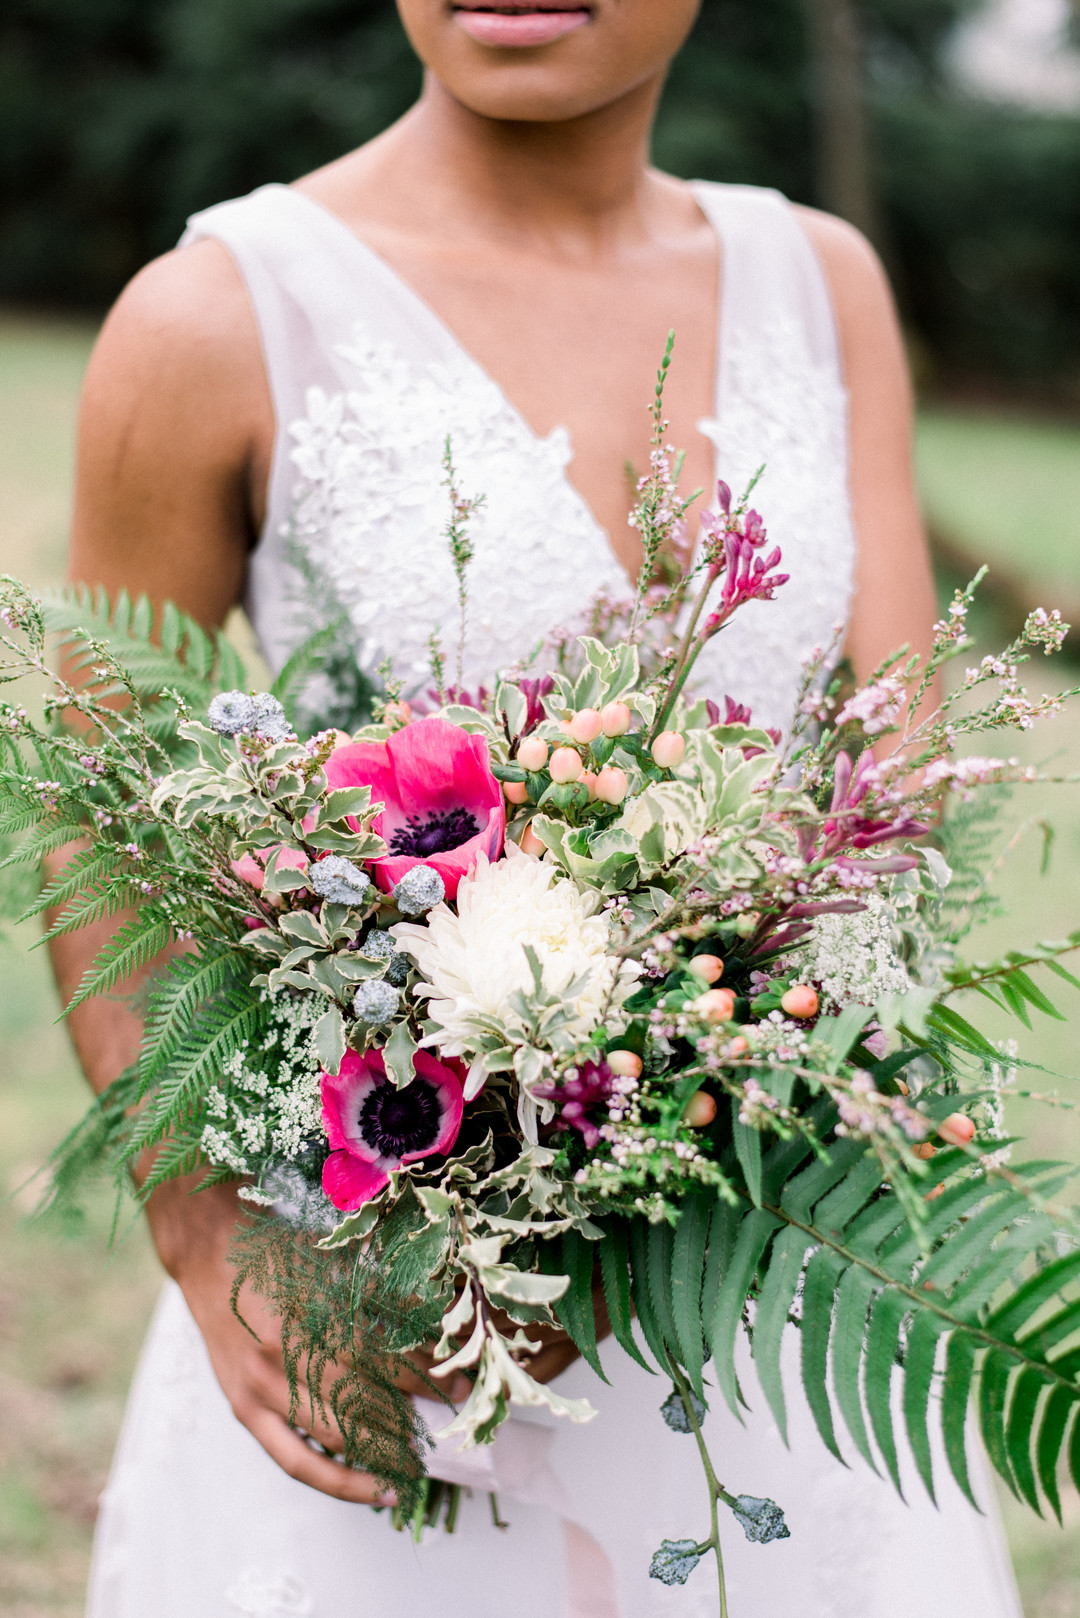 mpveta2ufmsmmemzgj43_big Hot Springs, NC Wedding Inspiration at Mountain Magnolia Inn